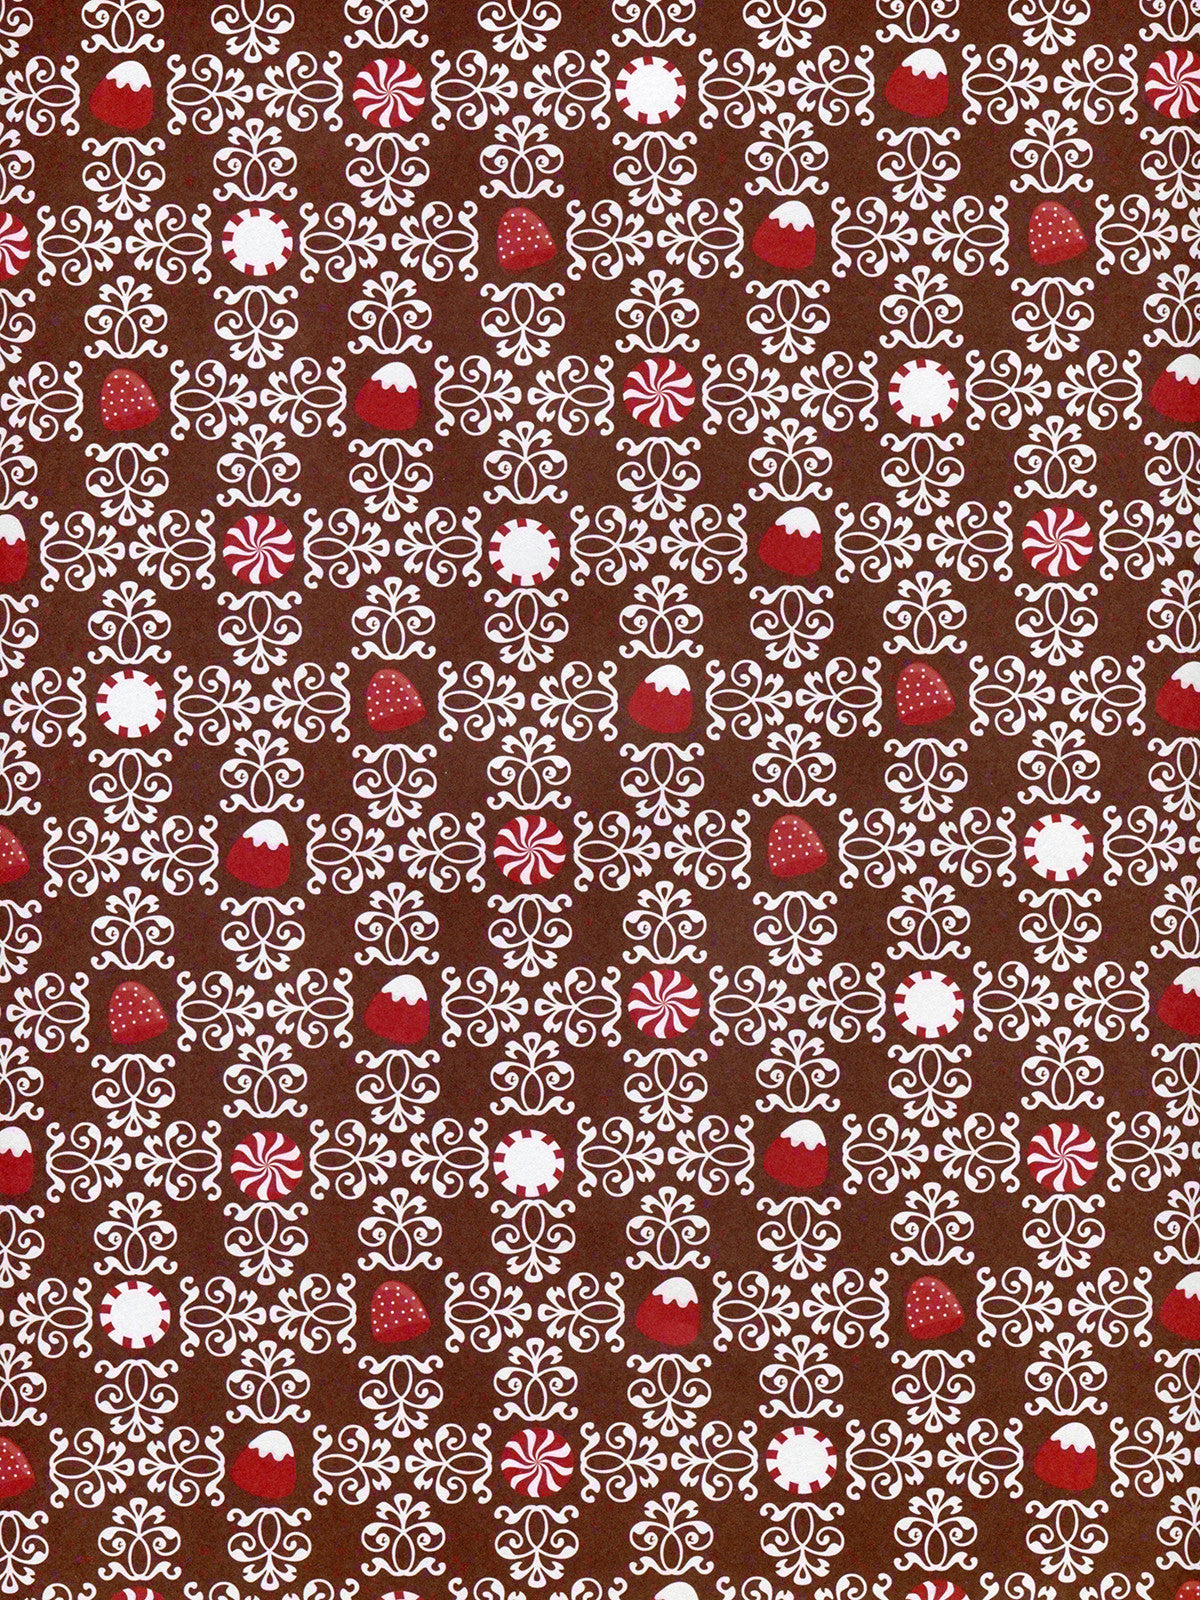 Peppermints and Gumdrops Photography Background / 8102 - DropPlace